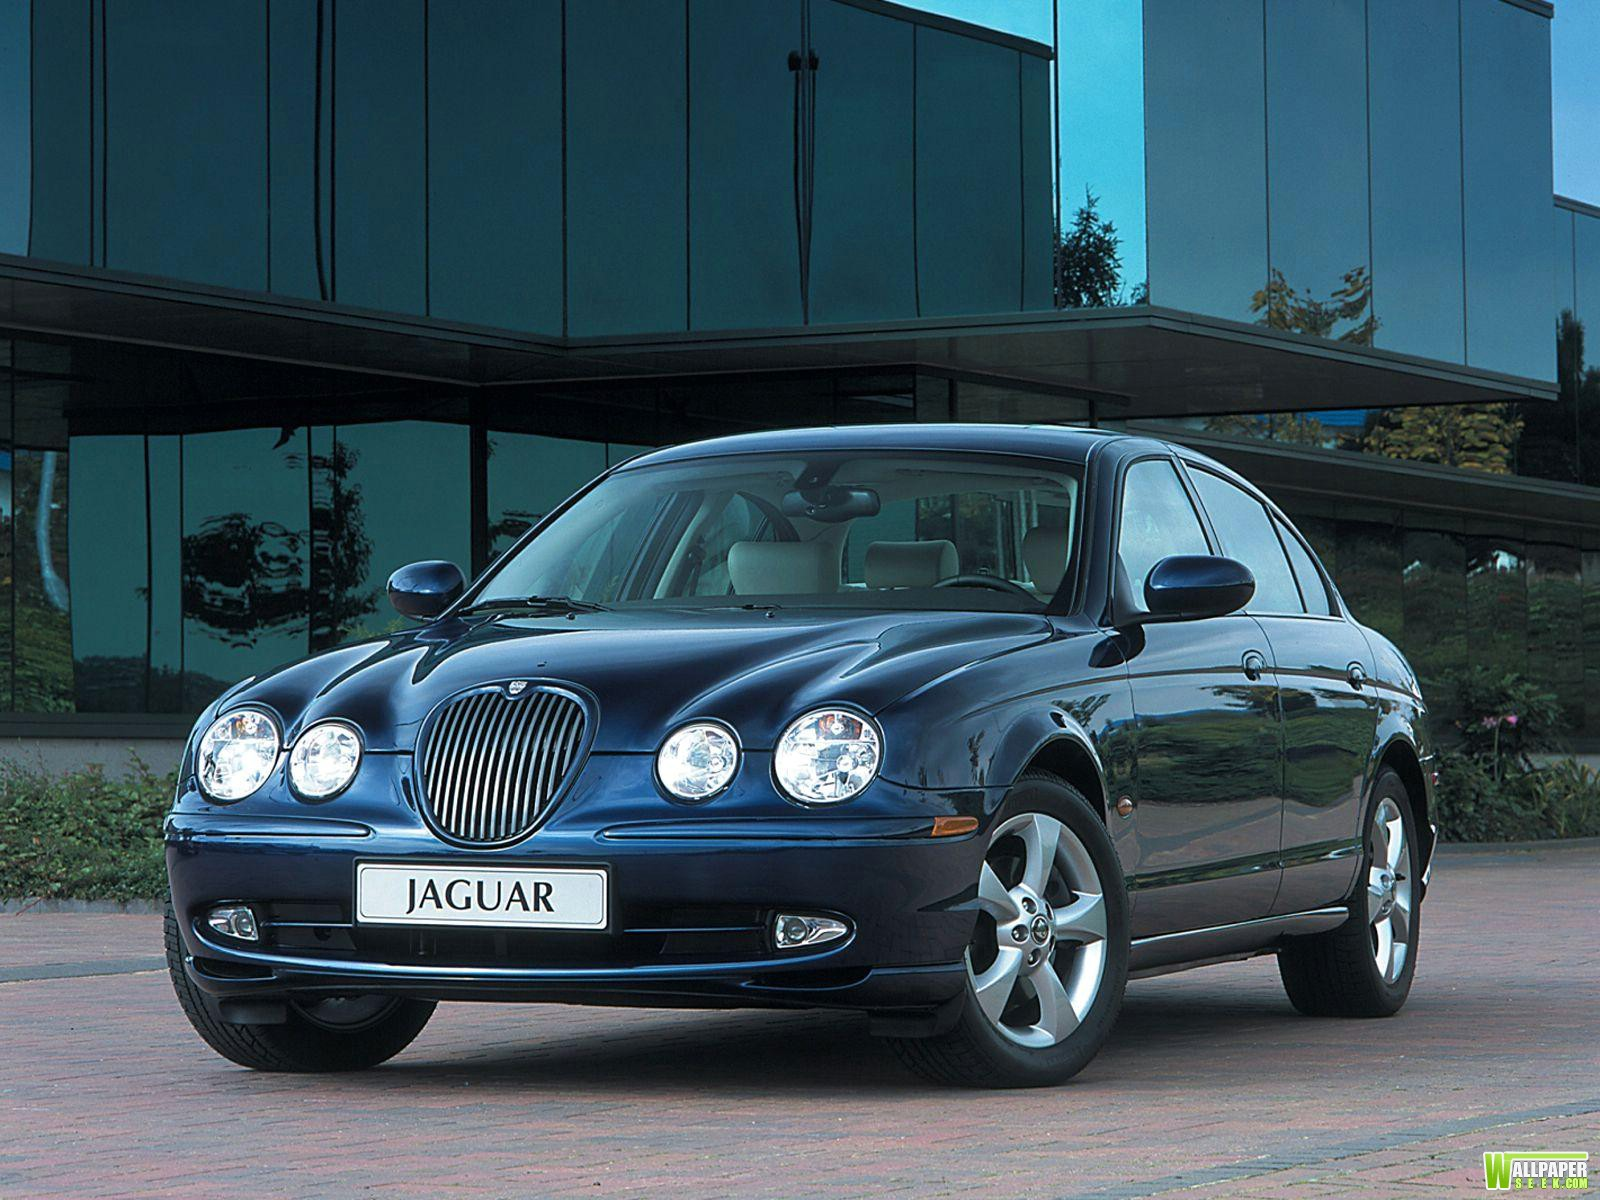 Cars Wallpapers And Pictures: Jaguar Car Wallpapers Hd